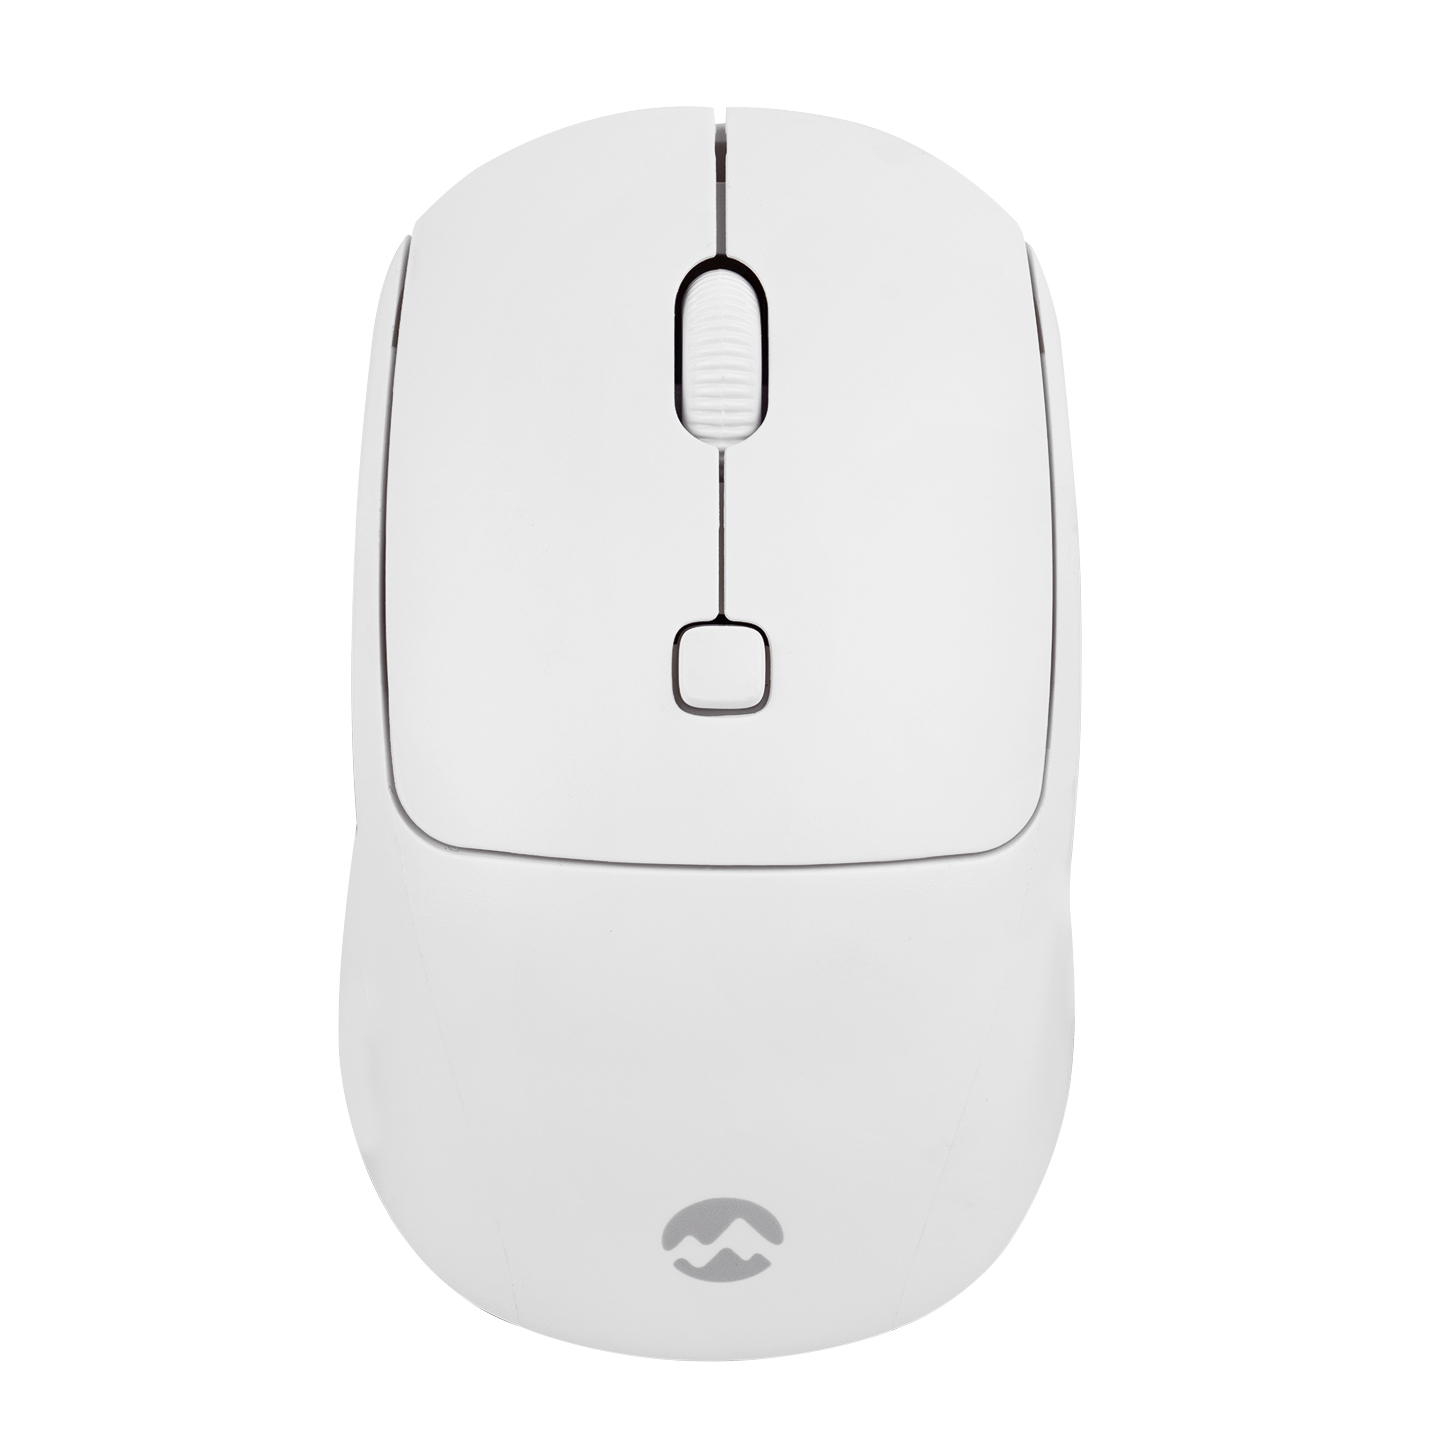 Everest SM-320 Usb Beyaz 1600dpi Optik Kablosuz Mouse